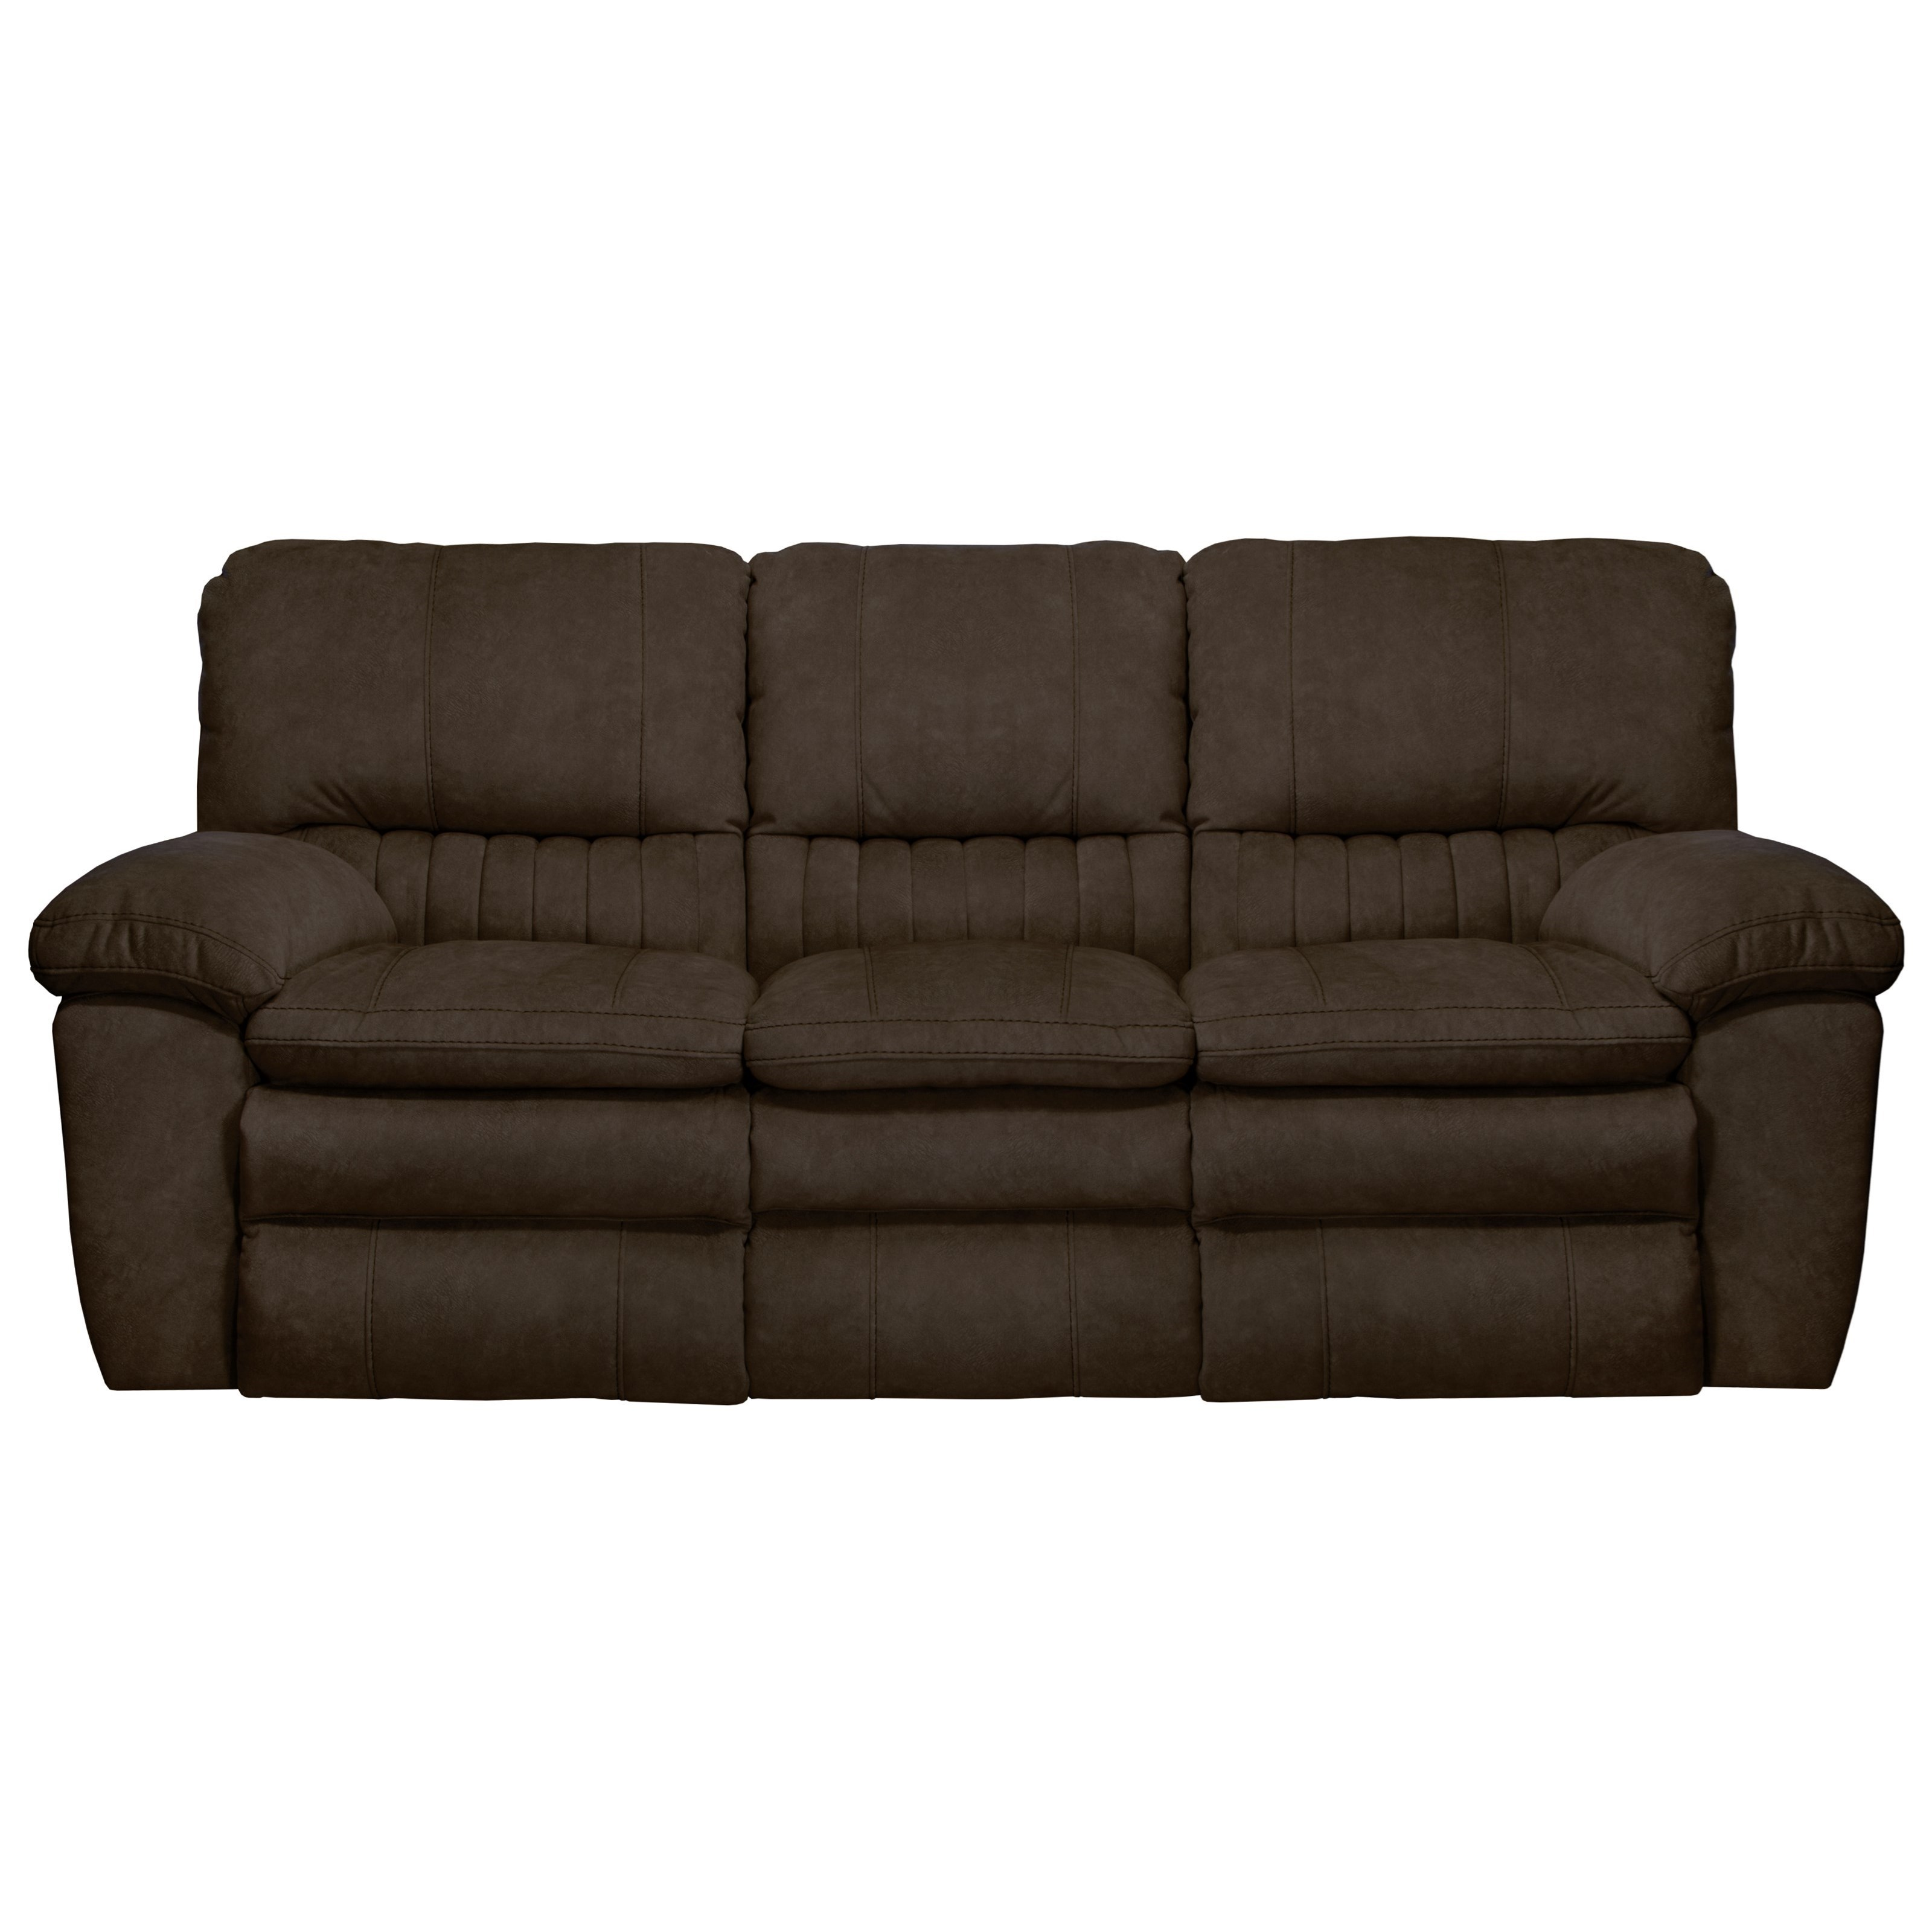 catnapper ranger reclining sectional sofa set ricardo leather lay flat by wolf and gardiner